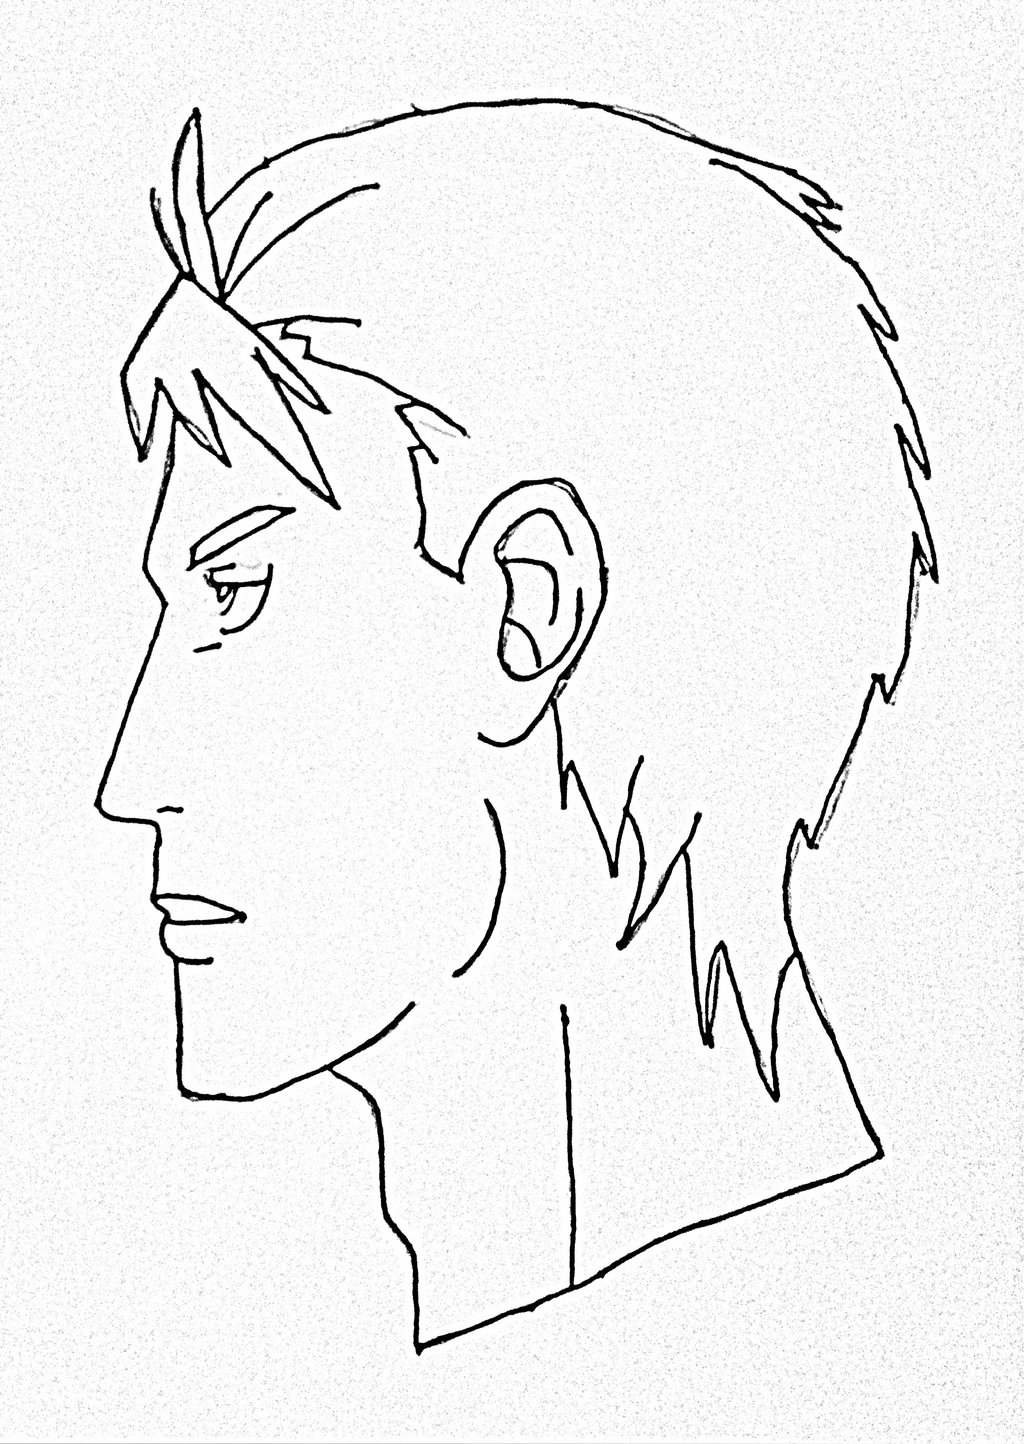 Boy Face Drawing At Getdrawings Com Free For Personal Use Boy Face